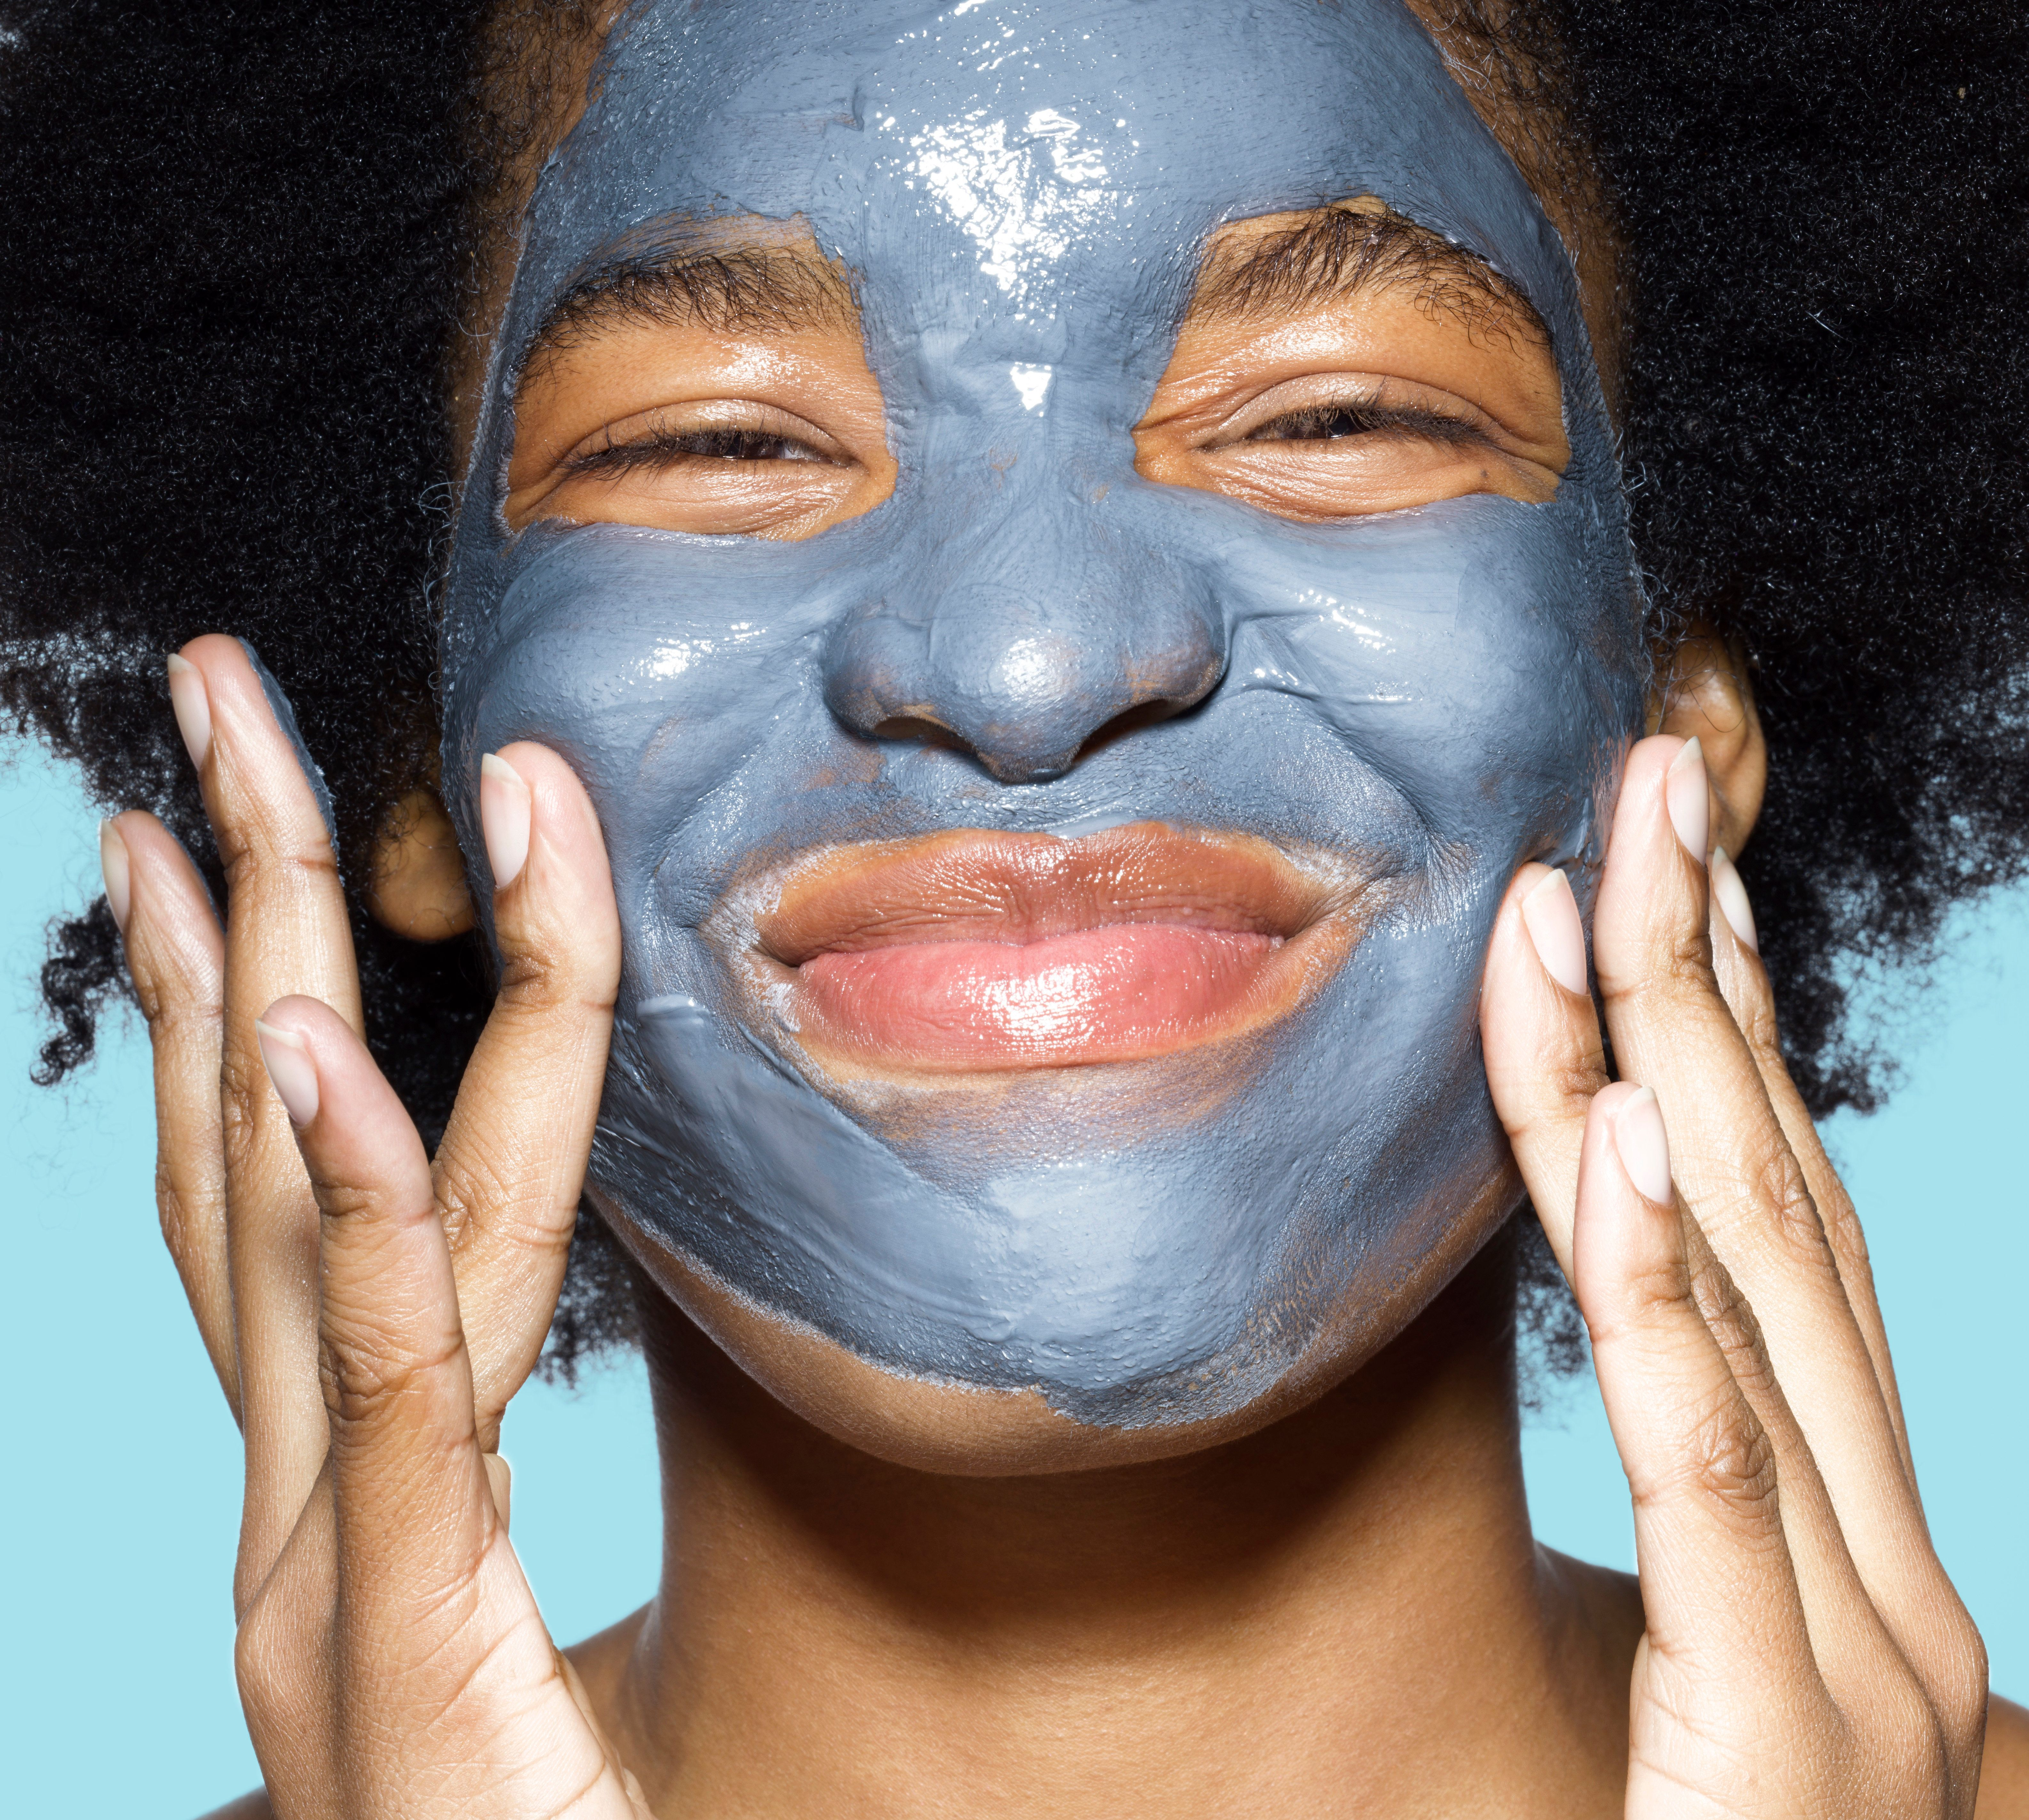 This is howhappy we are when we find affordable beauty products we love.